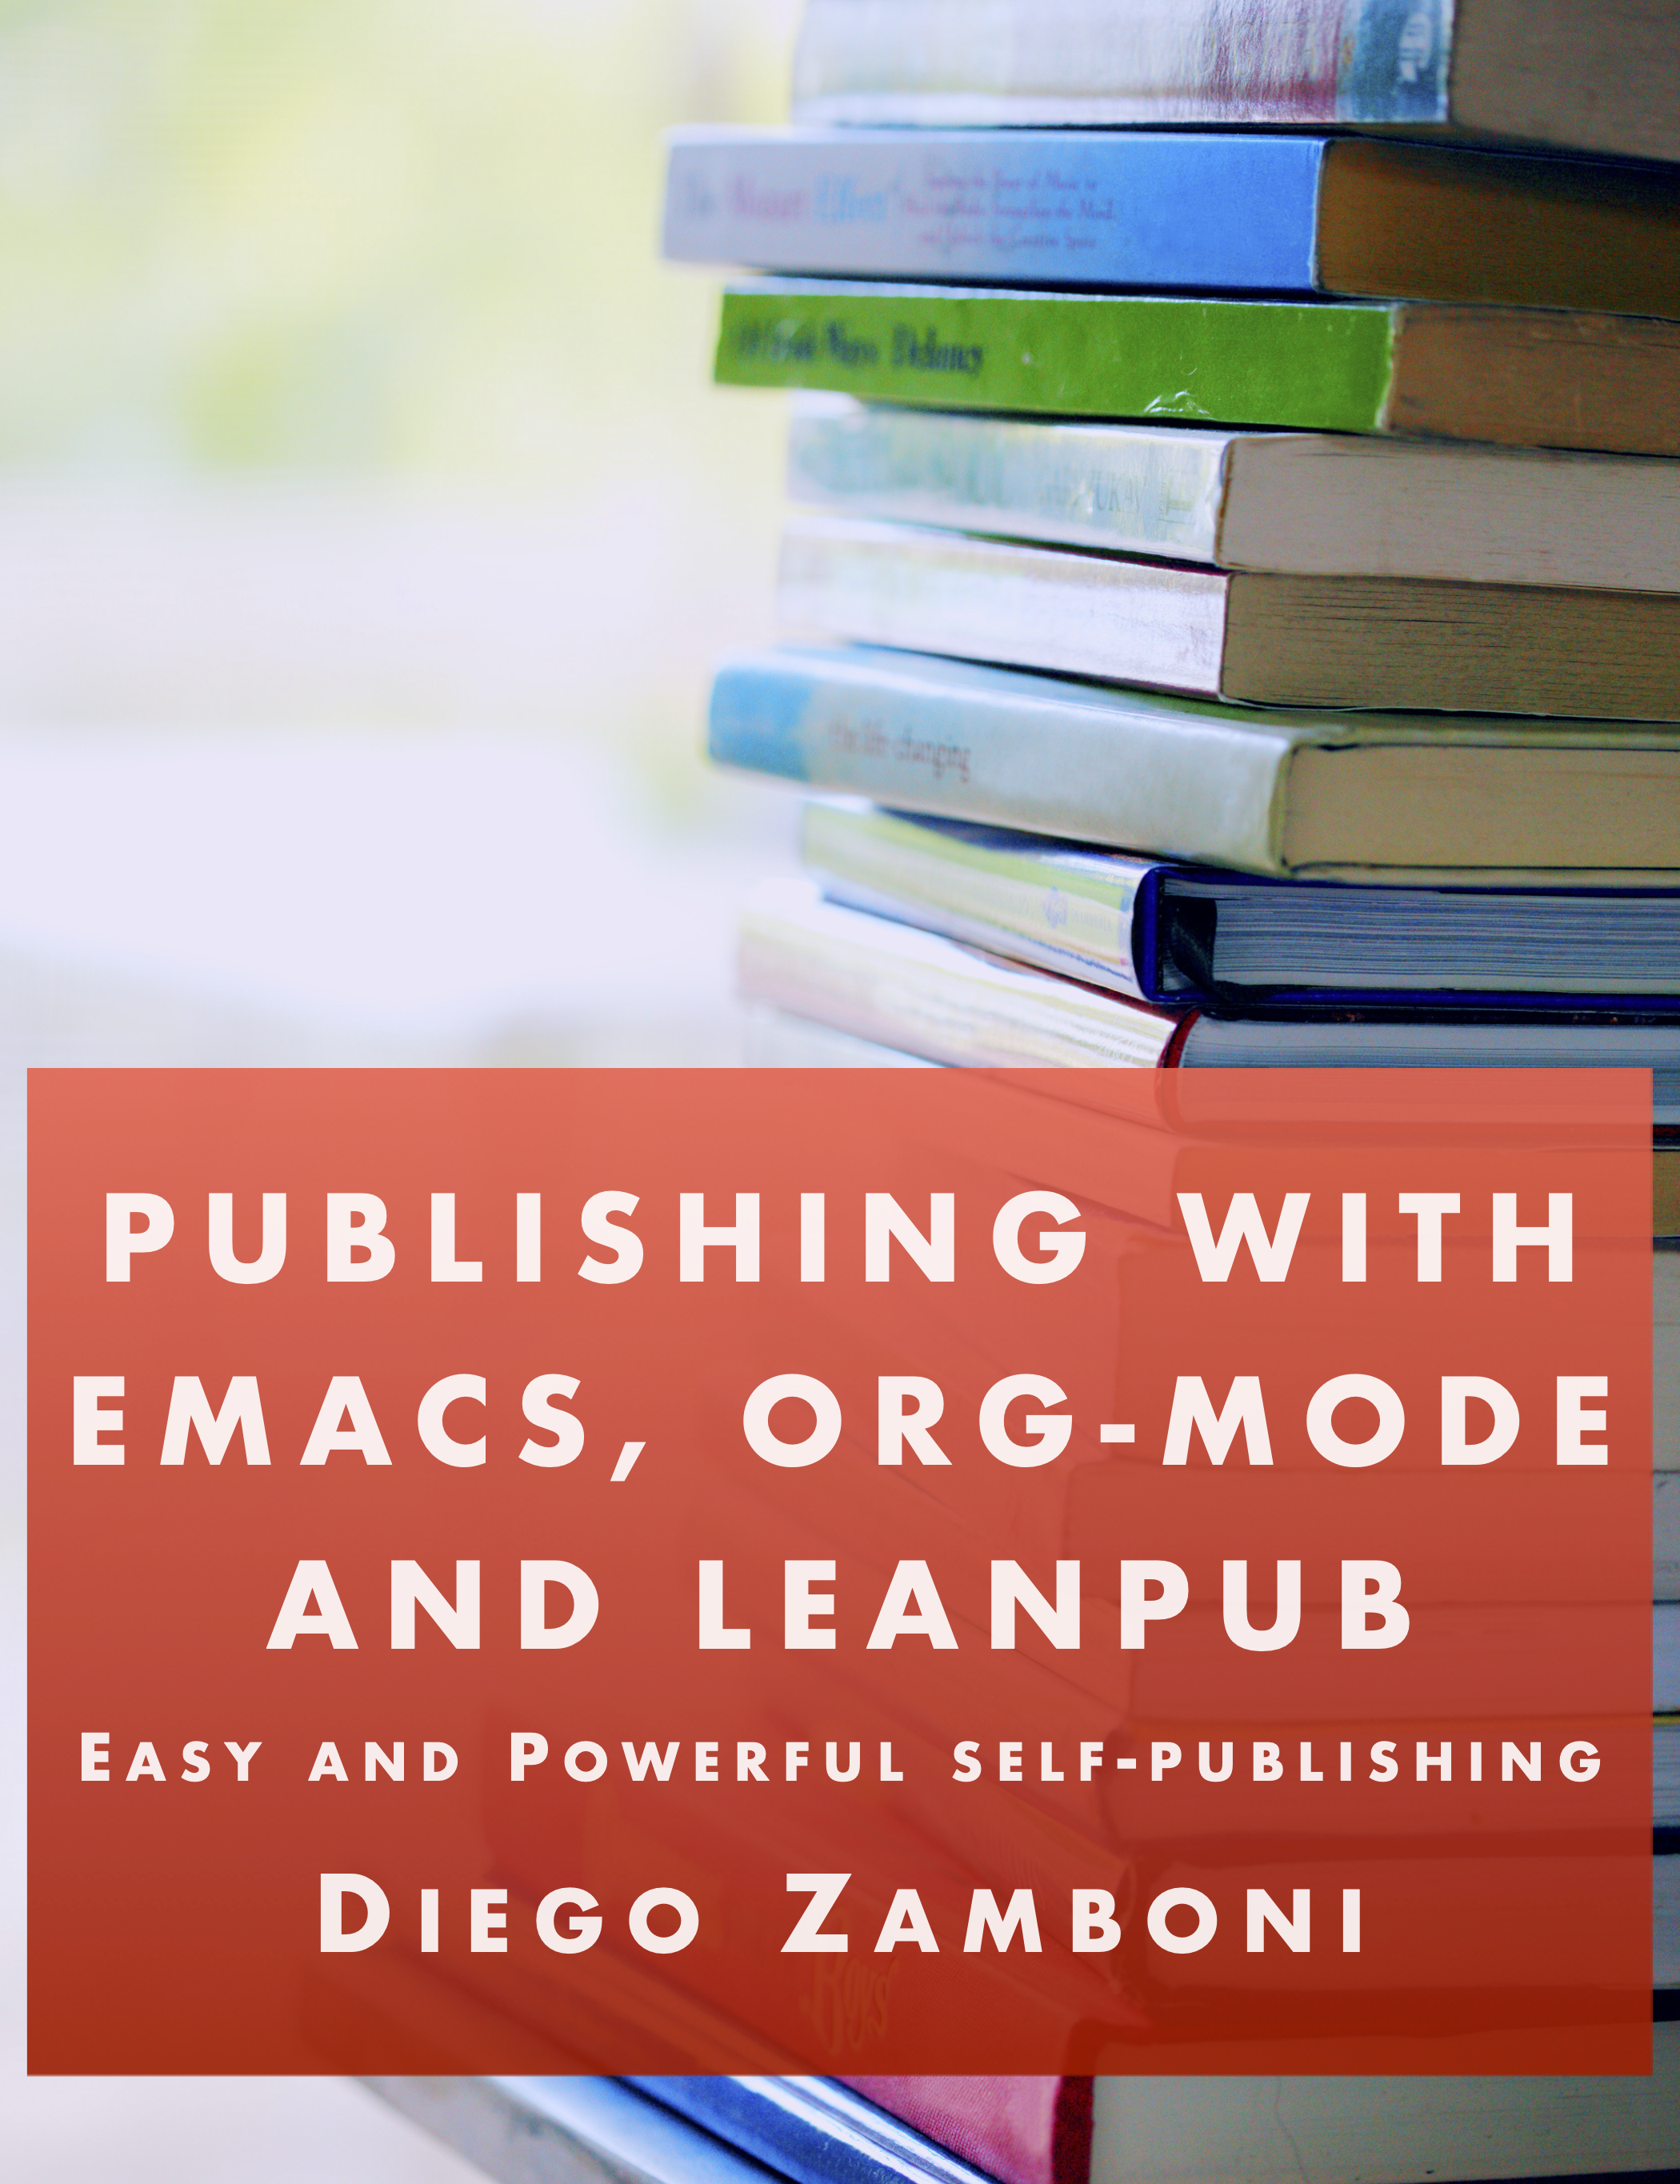 image from New book: Publishing with Emacs, Org-mode and Leanpub